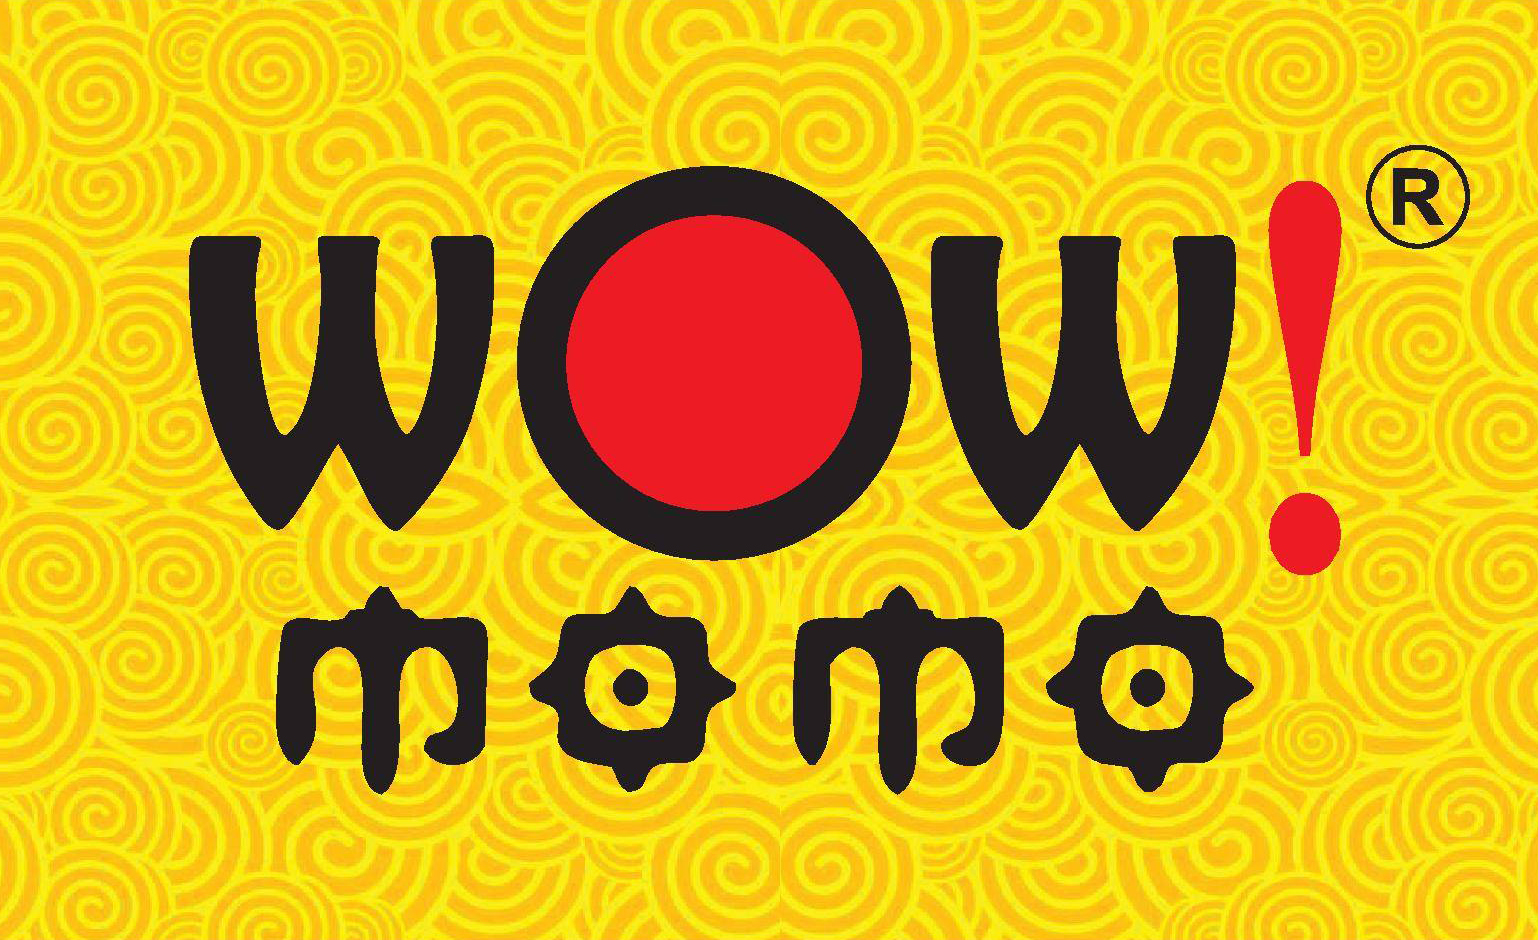 Wow! Momo - Wikipedia